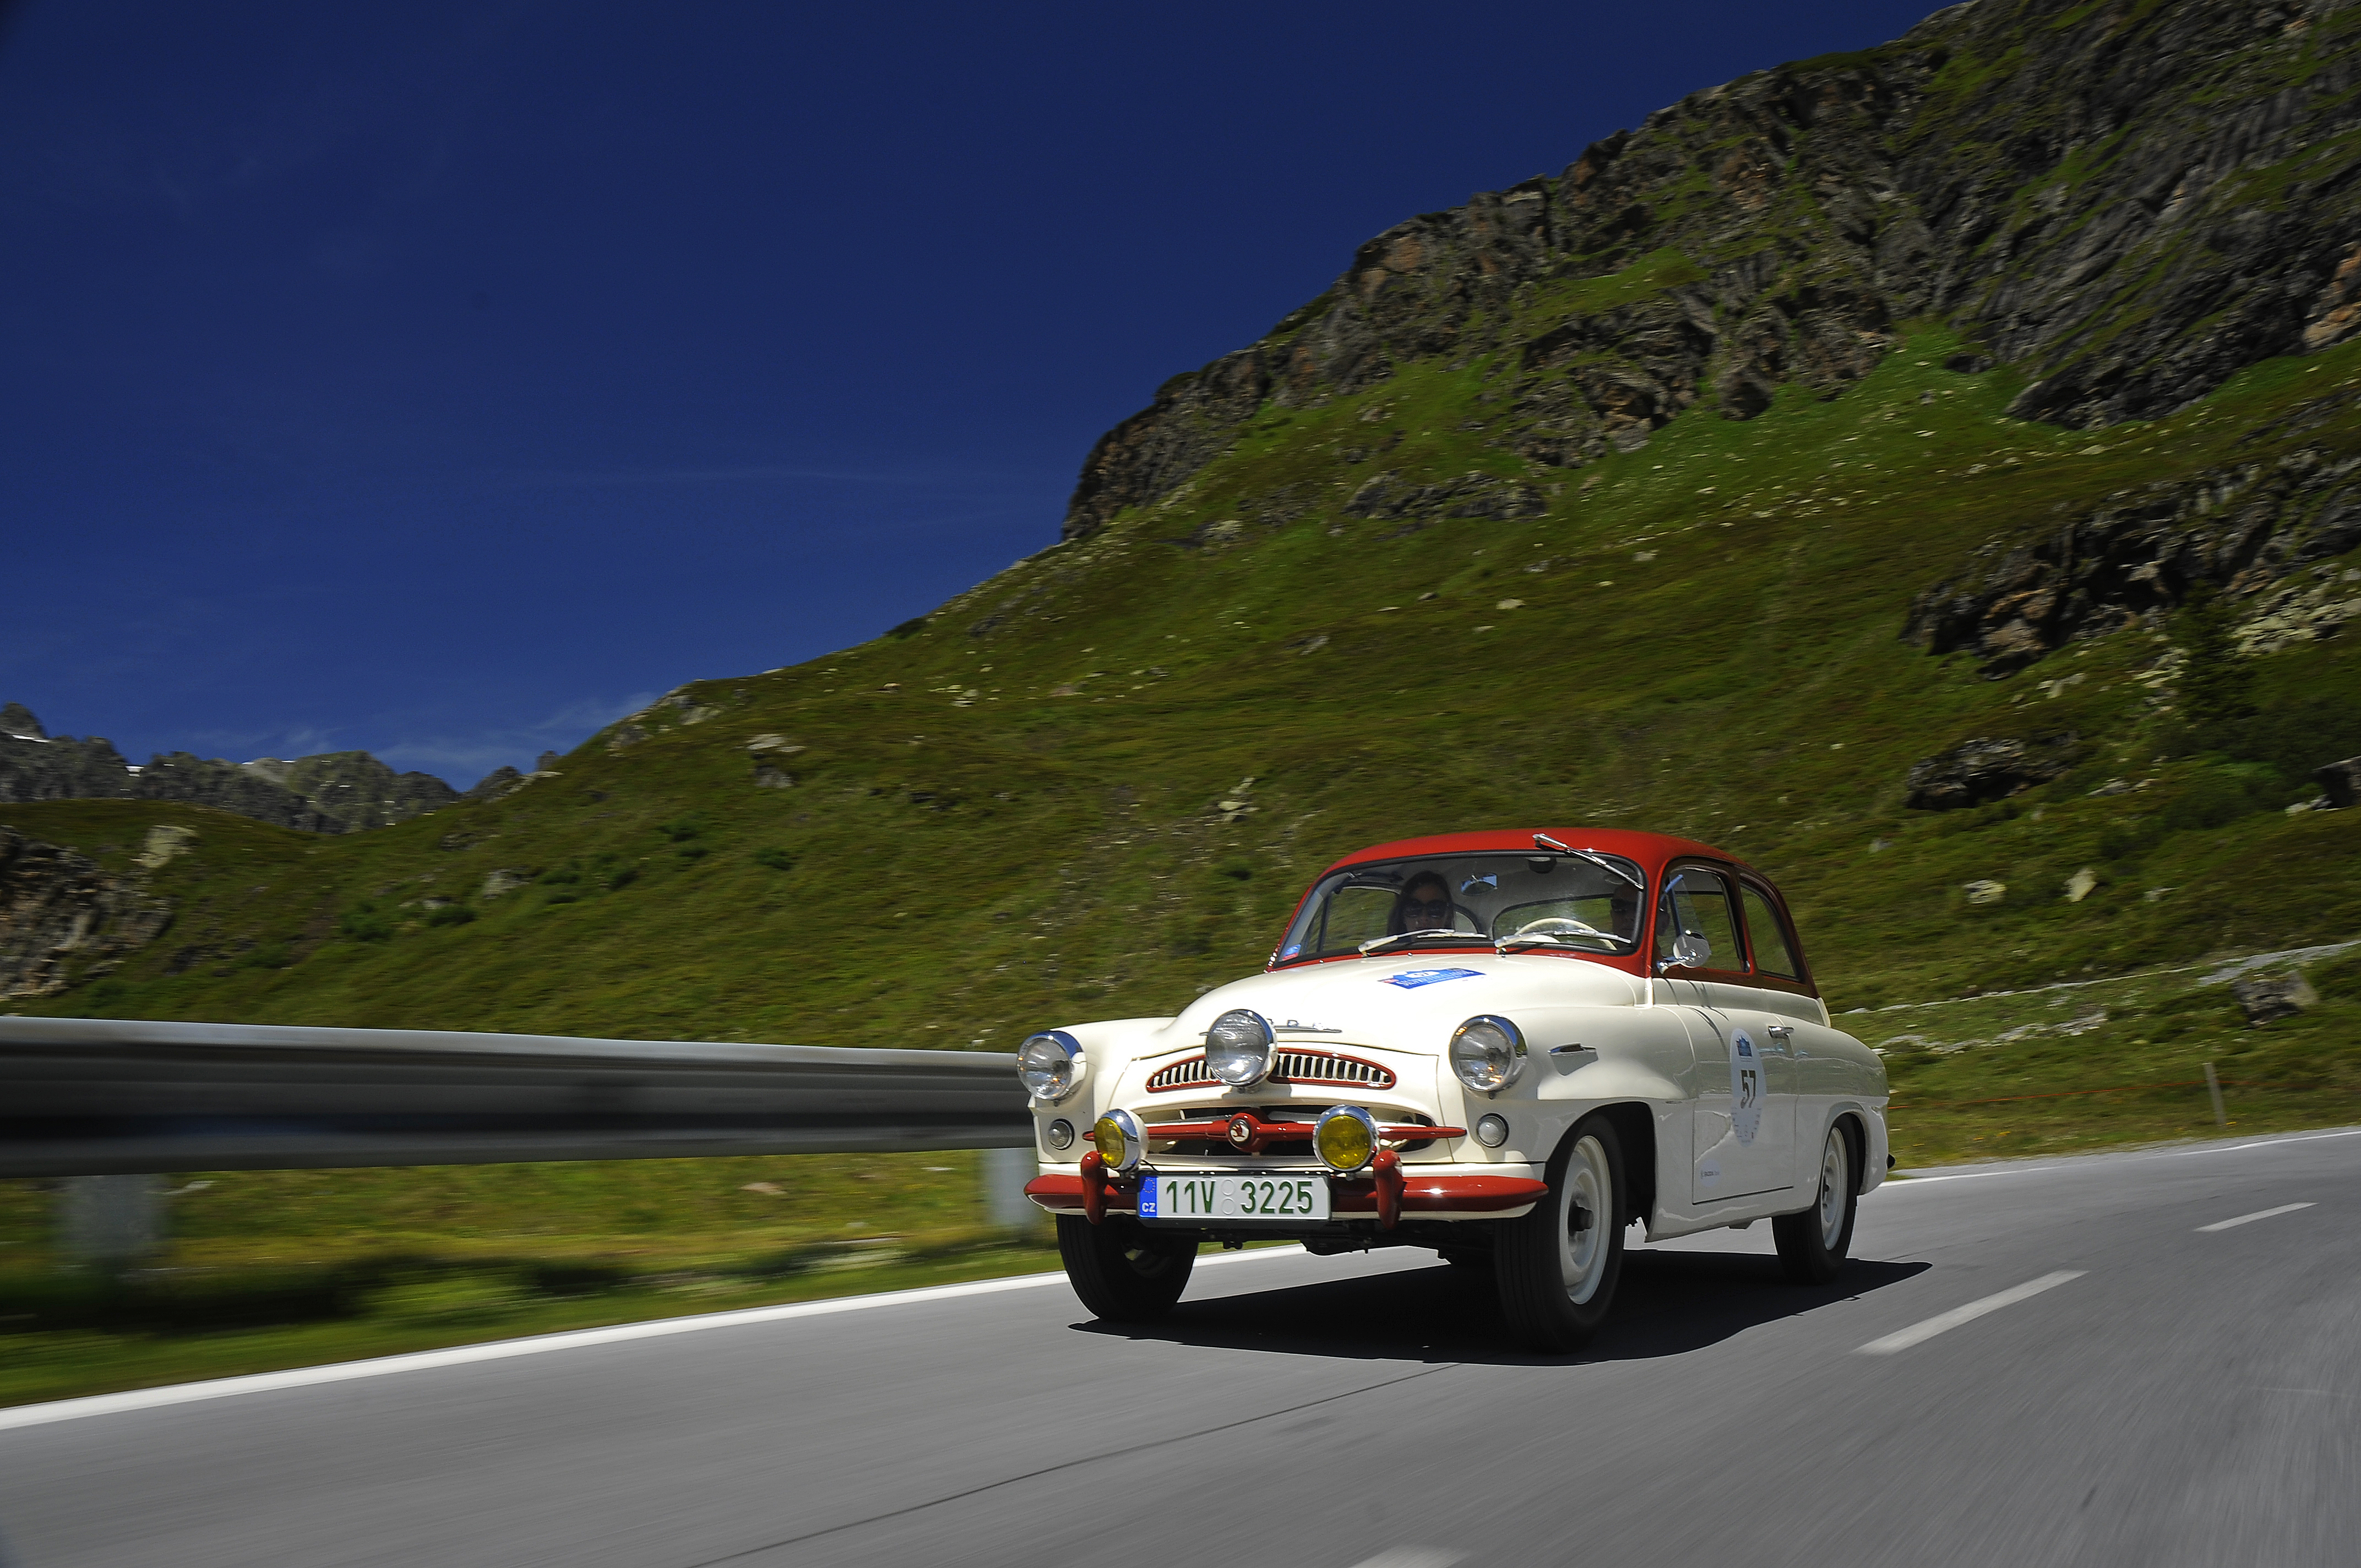 Vintage cars & Alpine scenes: ŠKODA sends two cult cars to the ...